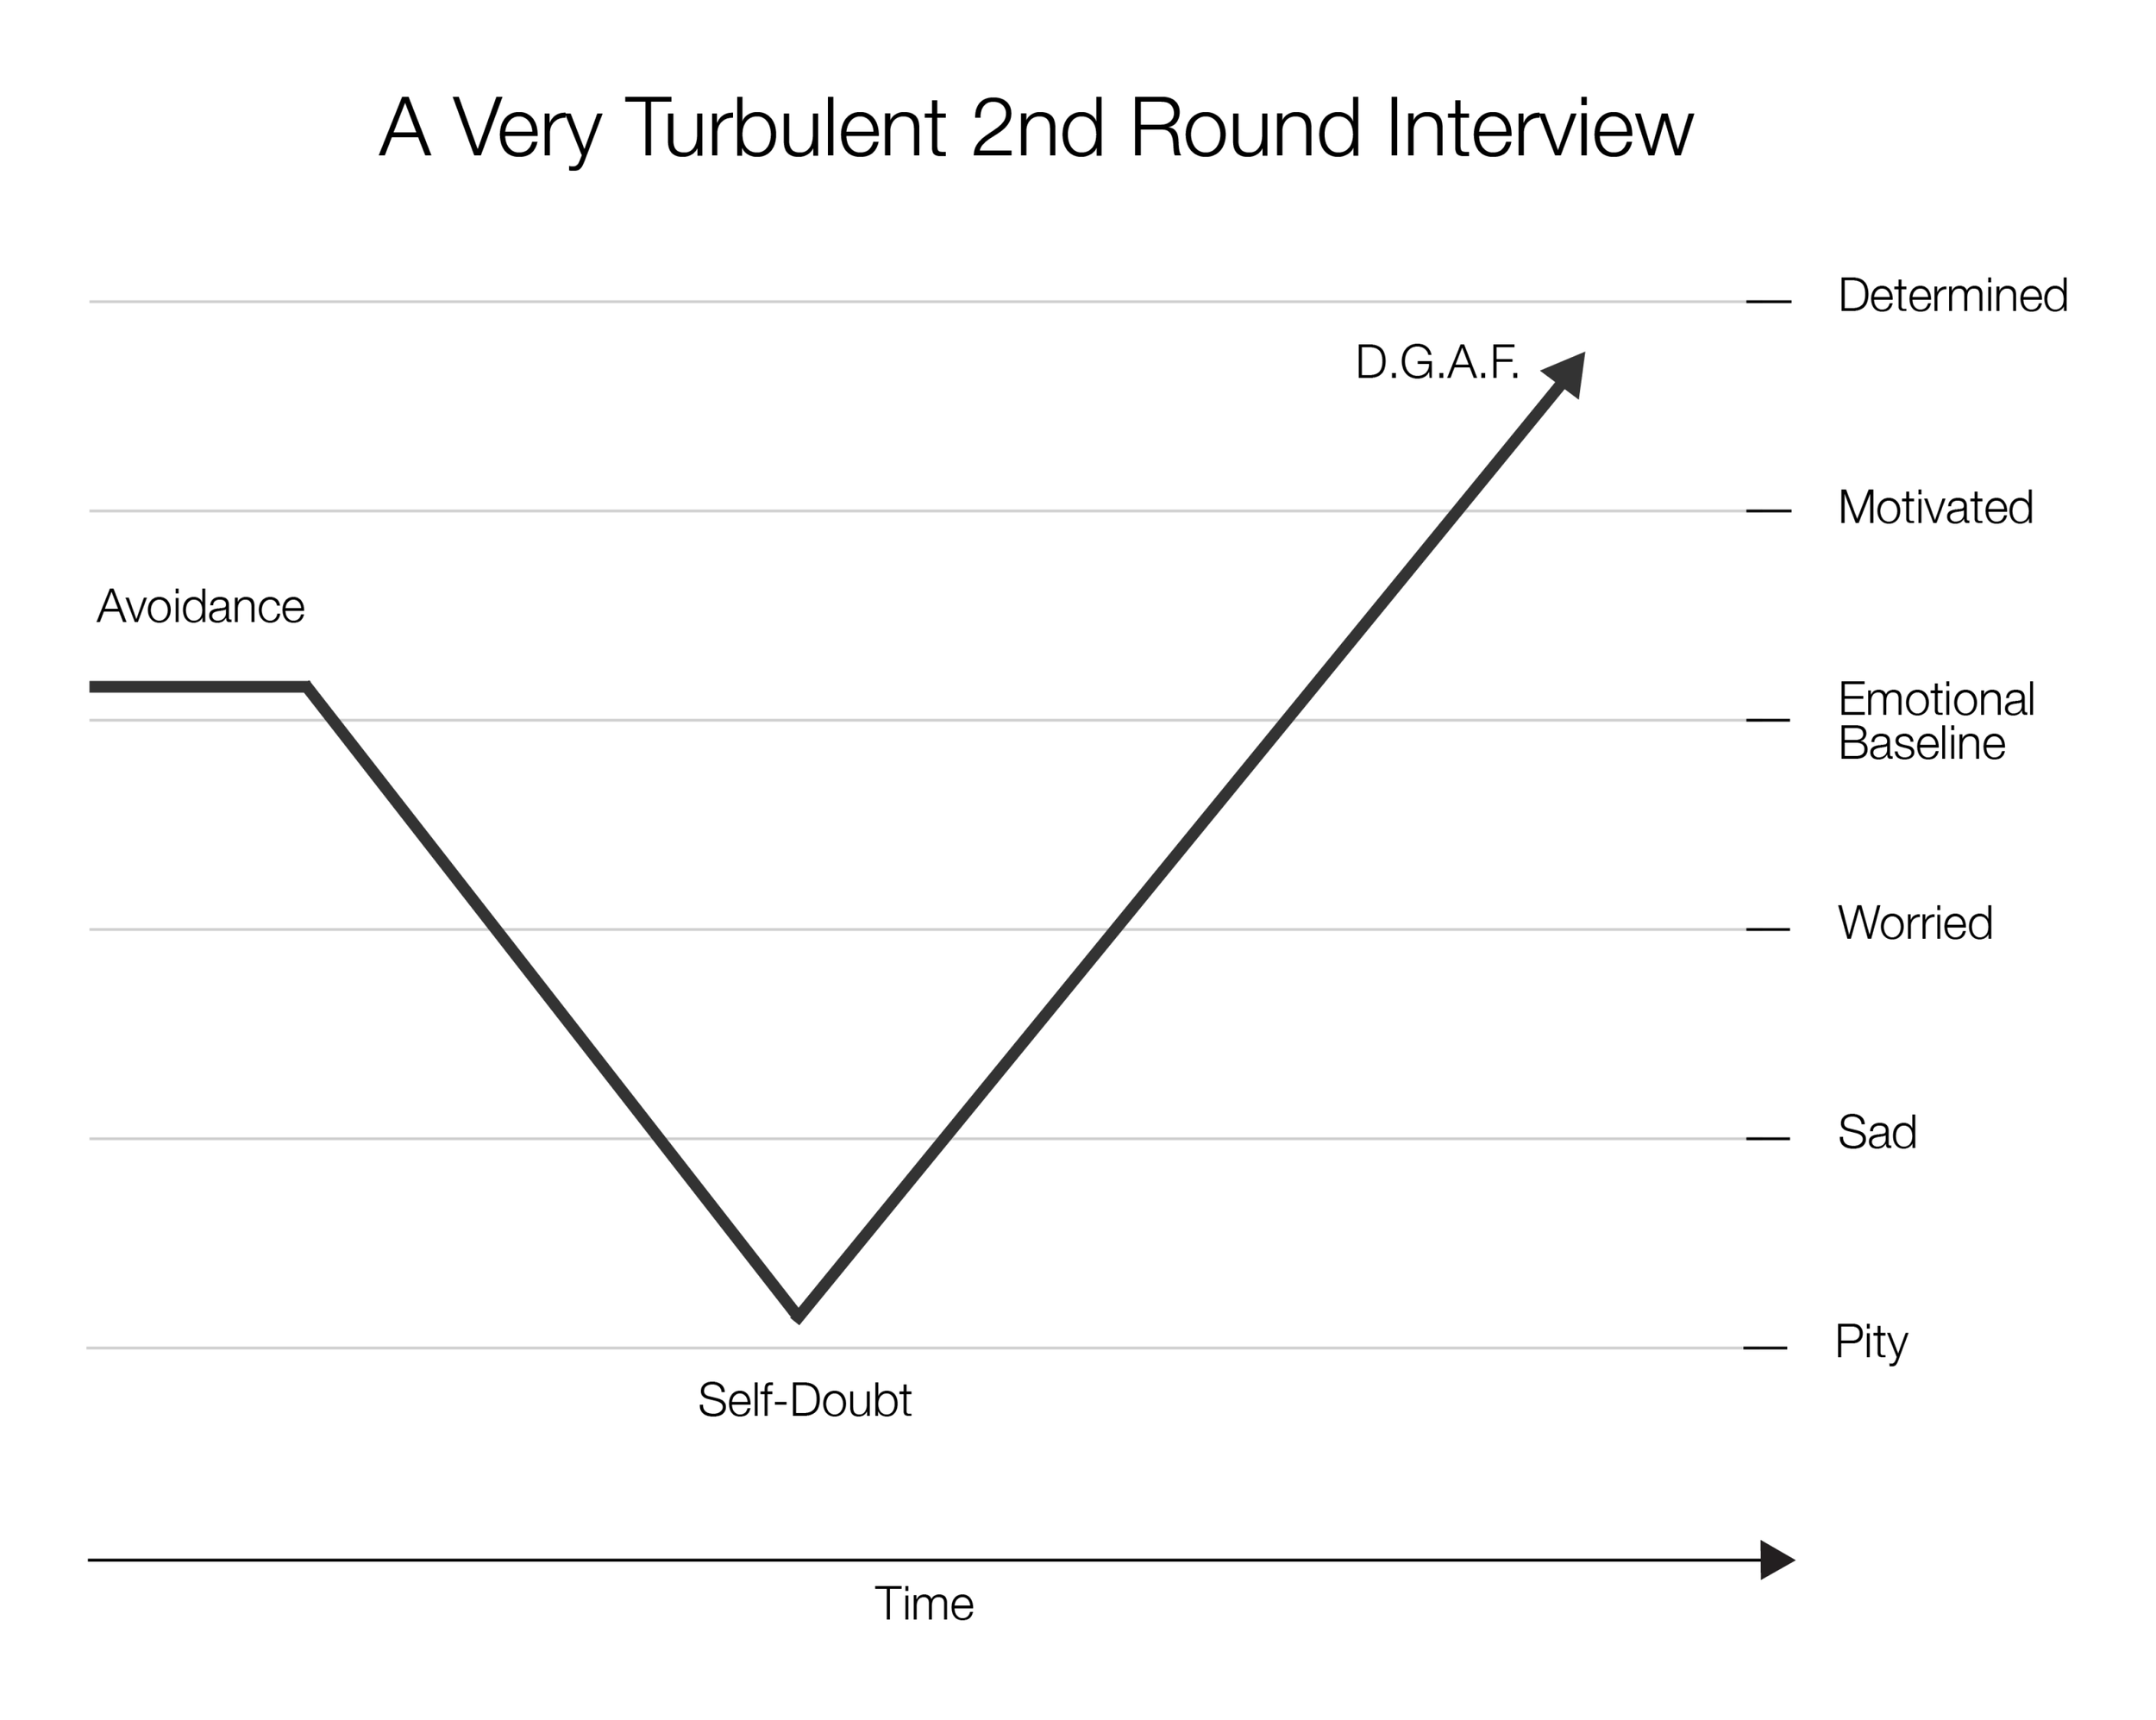 A visualization of my angst during the 2nd round interview; also a trajectory of this playlist